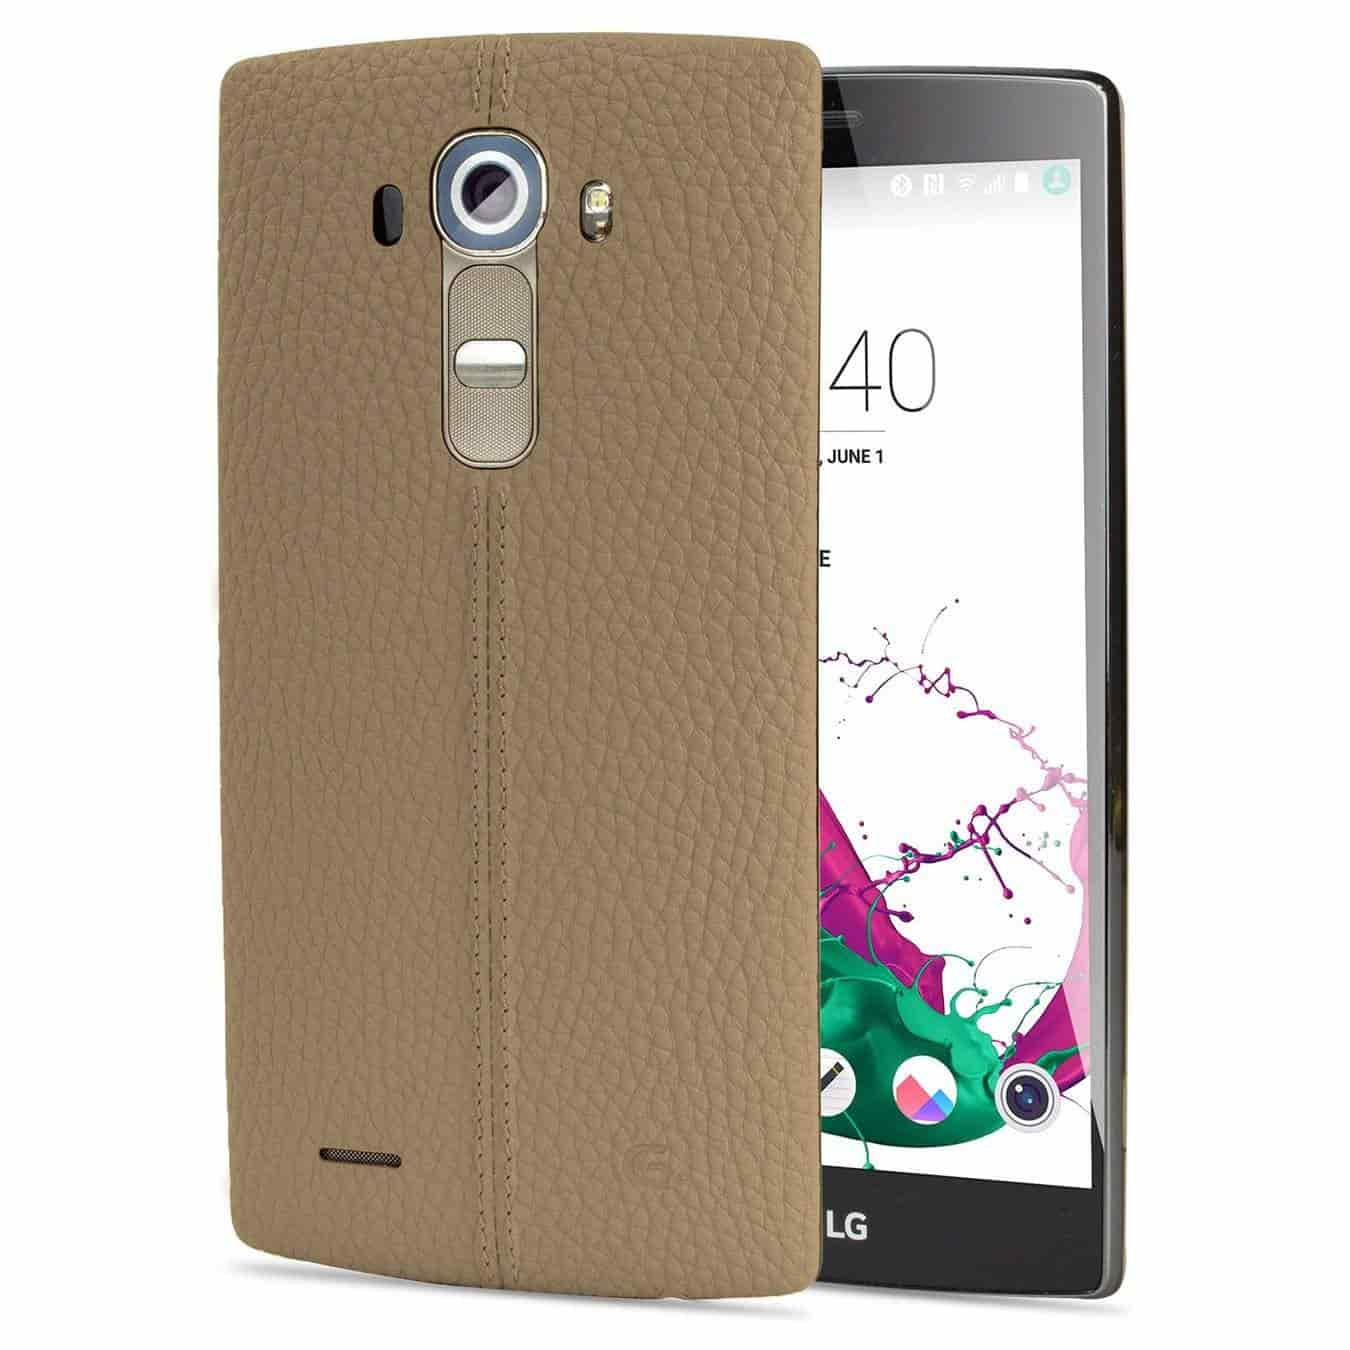 LG-Genuine-Leather-Back-Cover-for-LG-G4-Beige